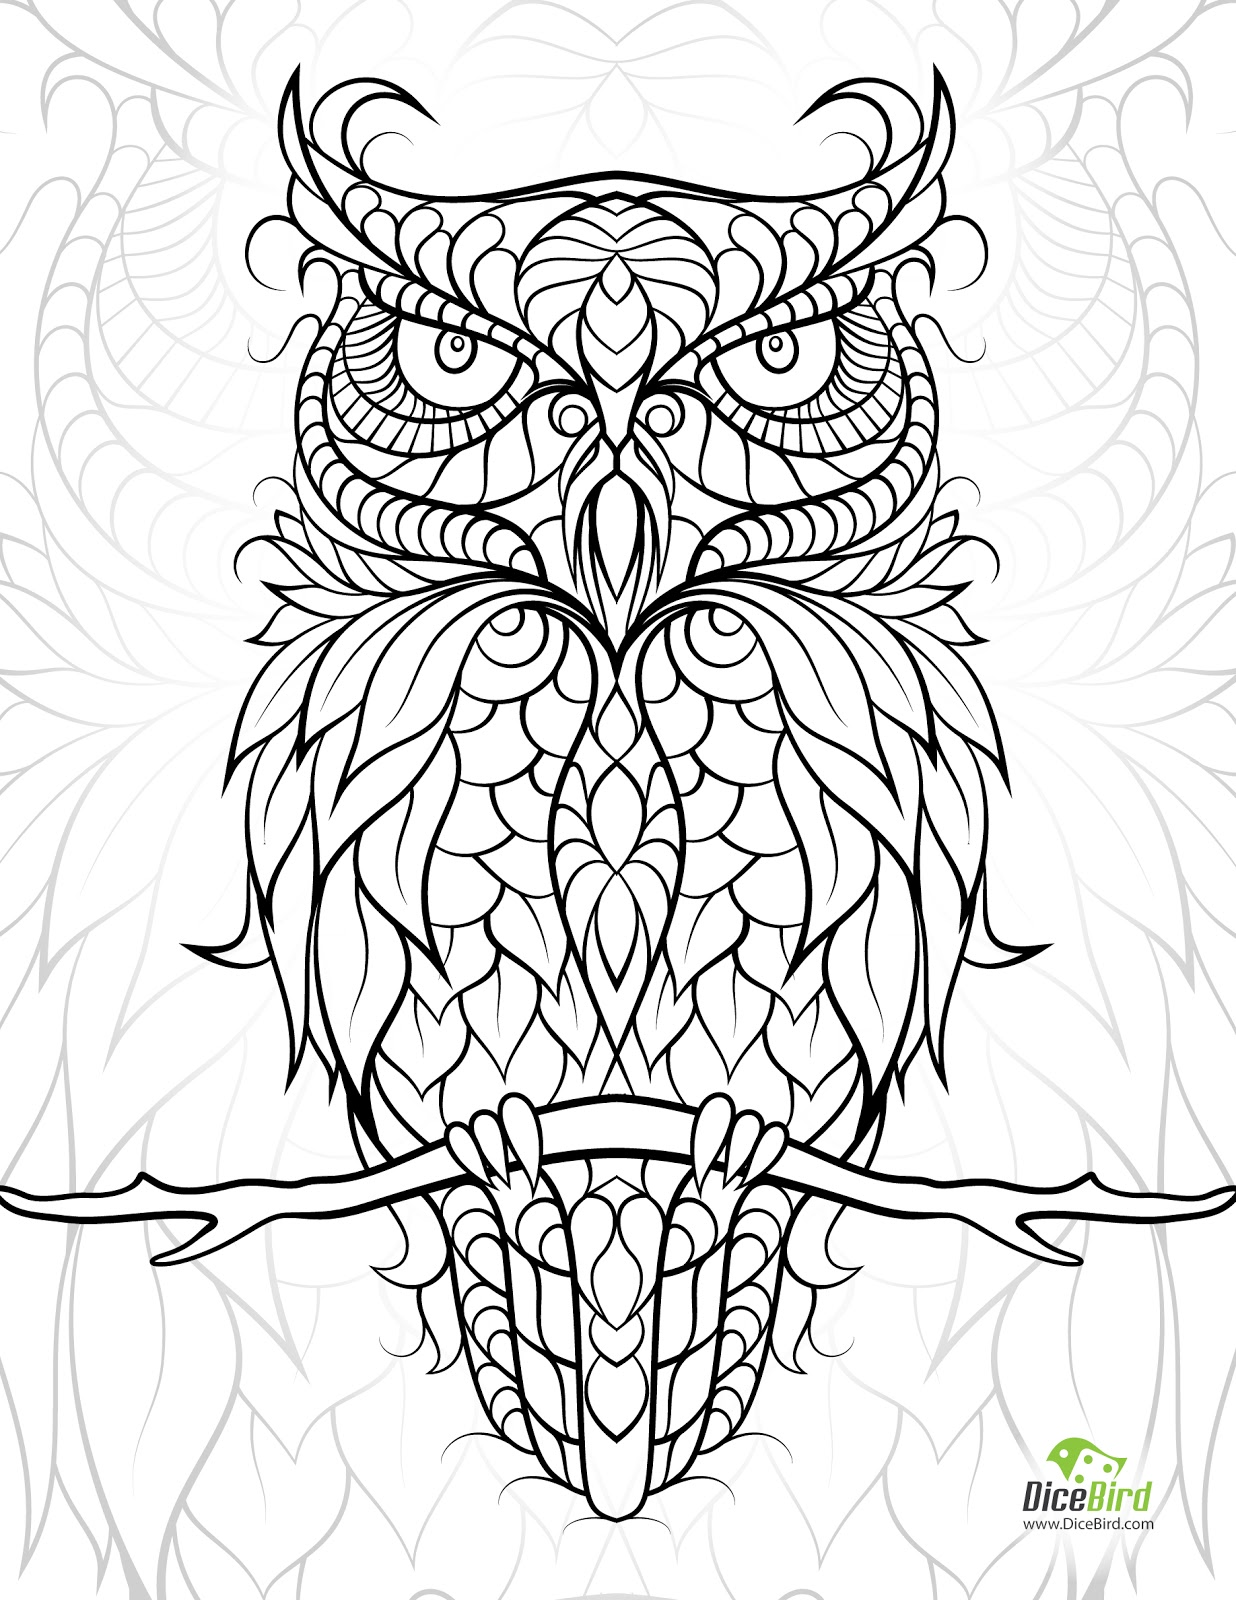 coloring pages for adults hd mandala art abstract hard coloring pages for adults line pages for coloring hd adults